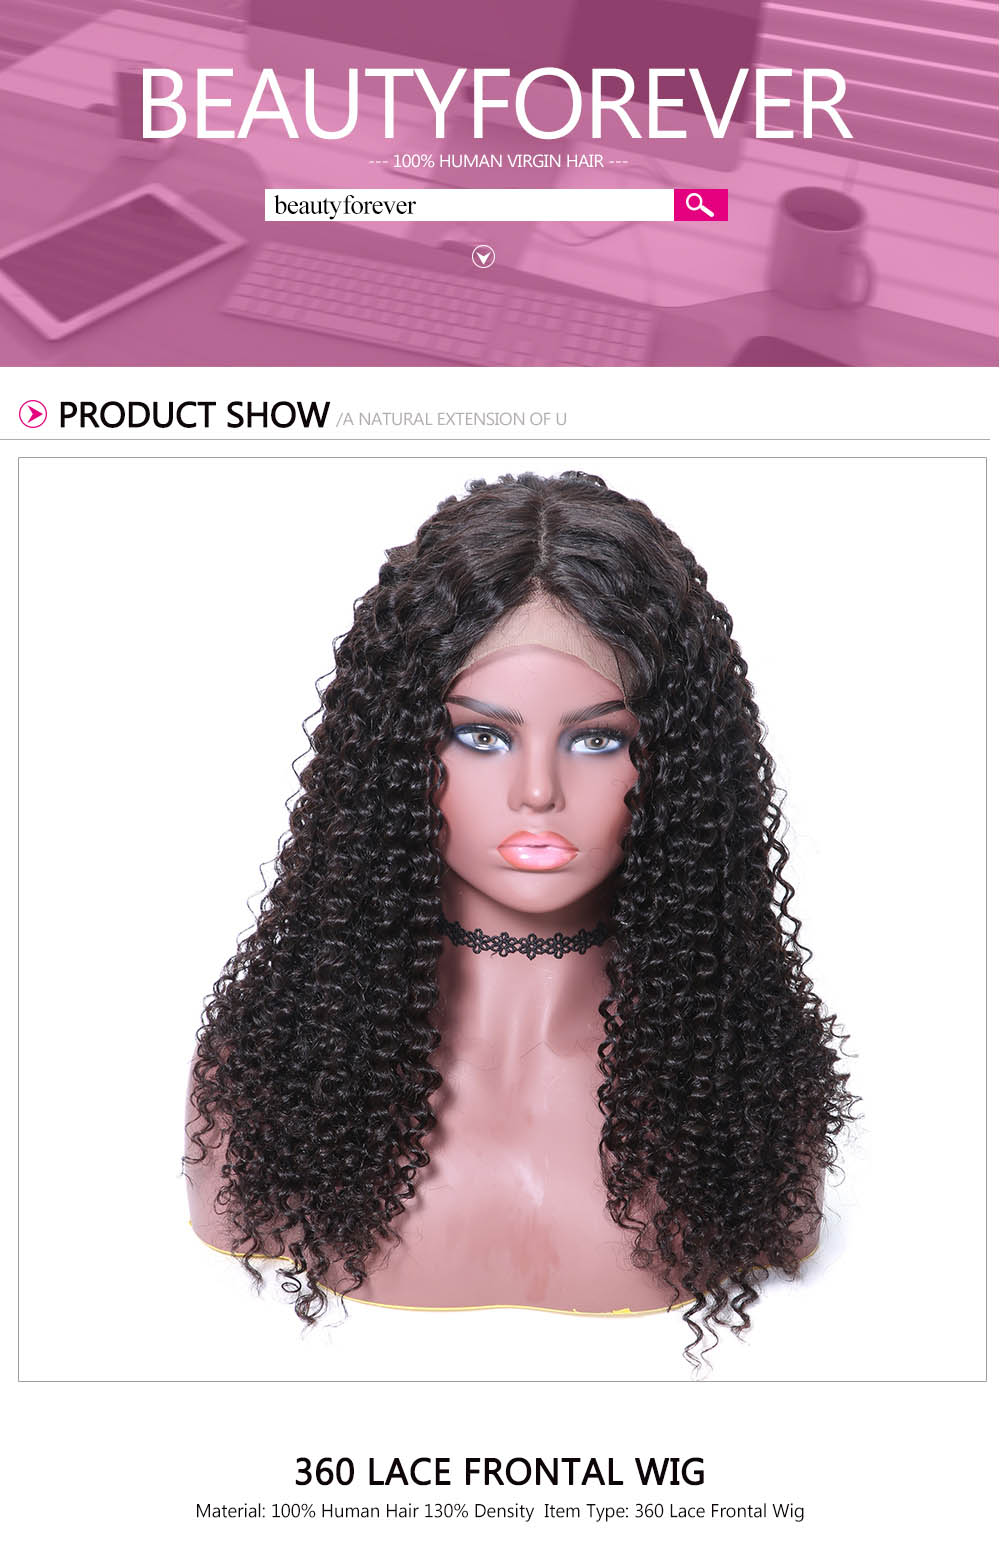 Beautyforever Long Jerry Curly Free Part 360 Lace Human Hair Wigs Perfect For Ponytail 4 Colors